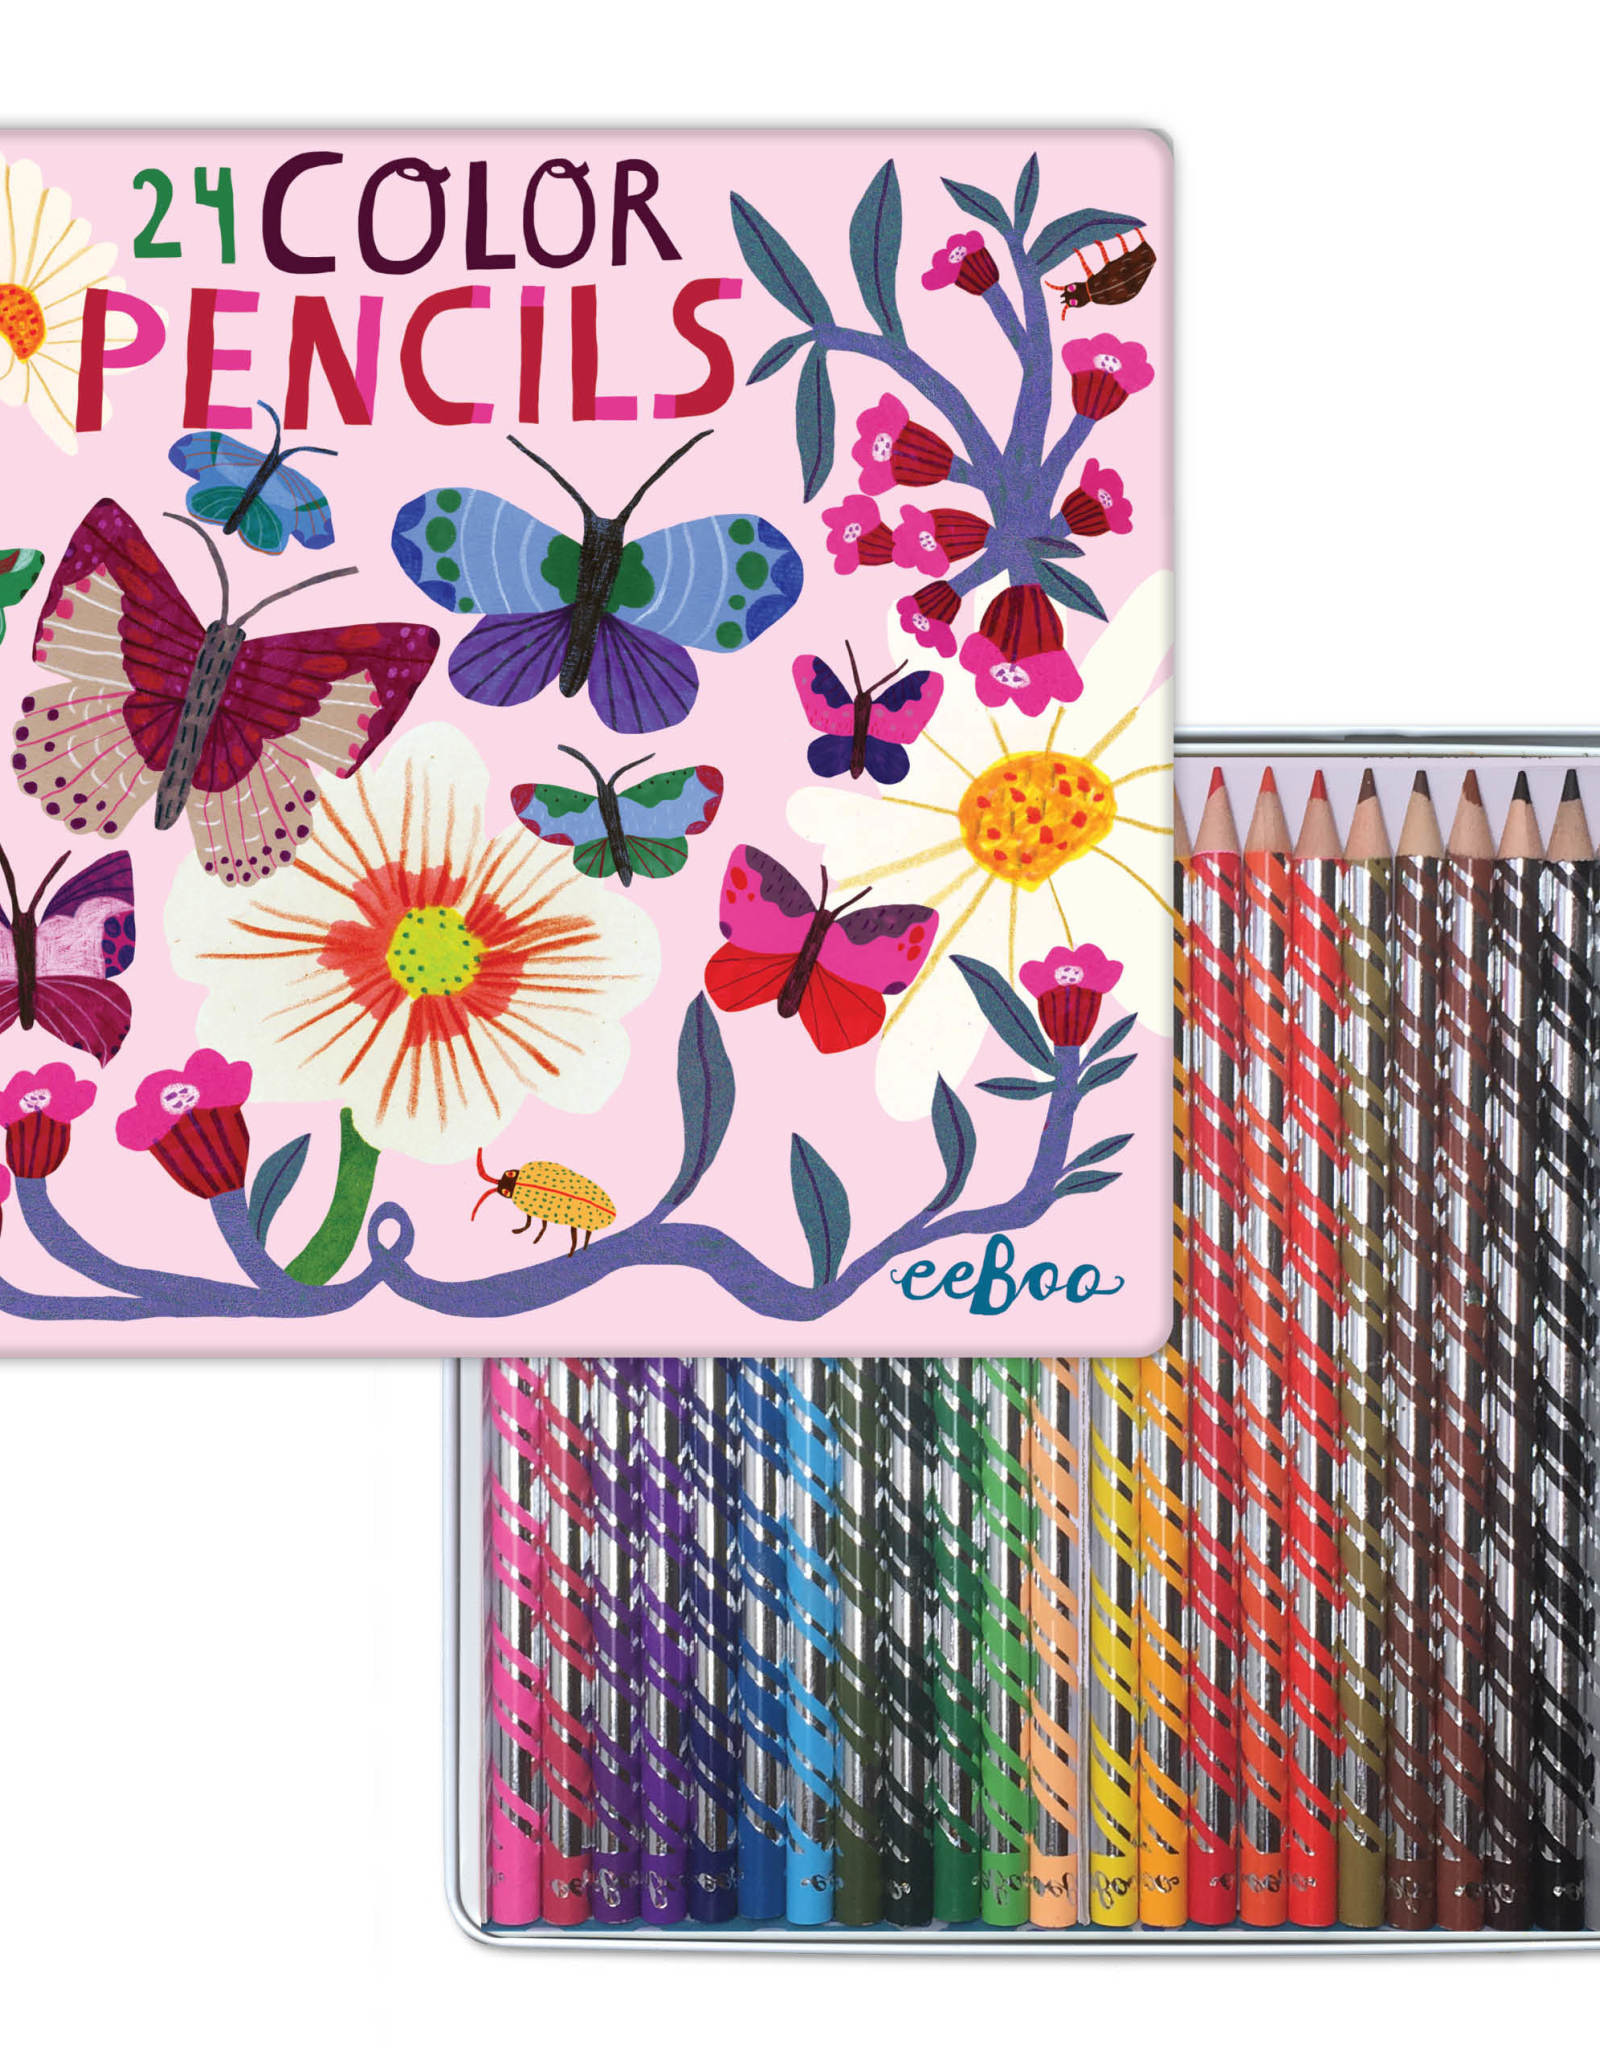 eeBoo Butterflies and Flowers 24 Color Pencils Tin Box